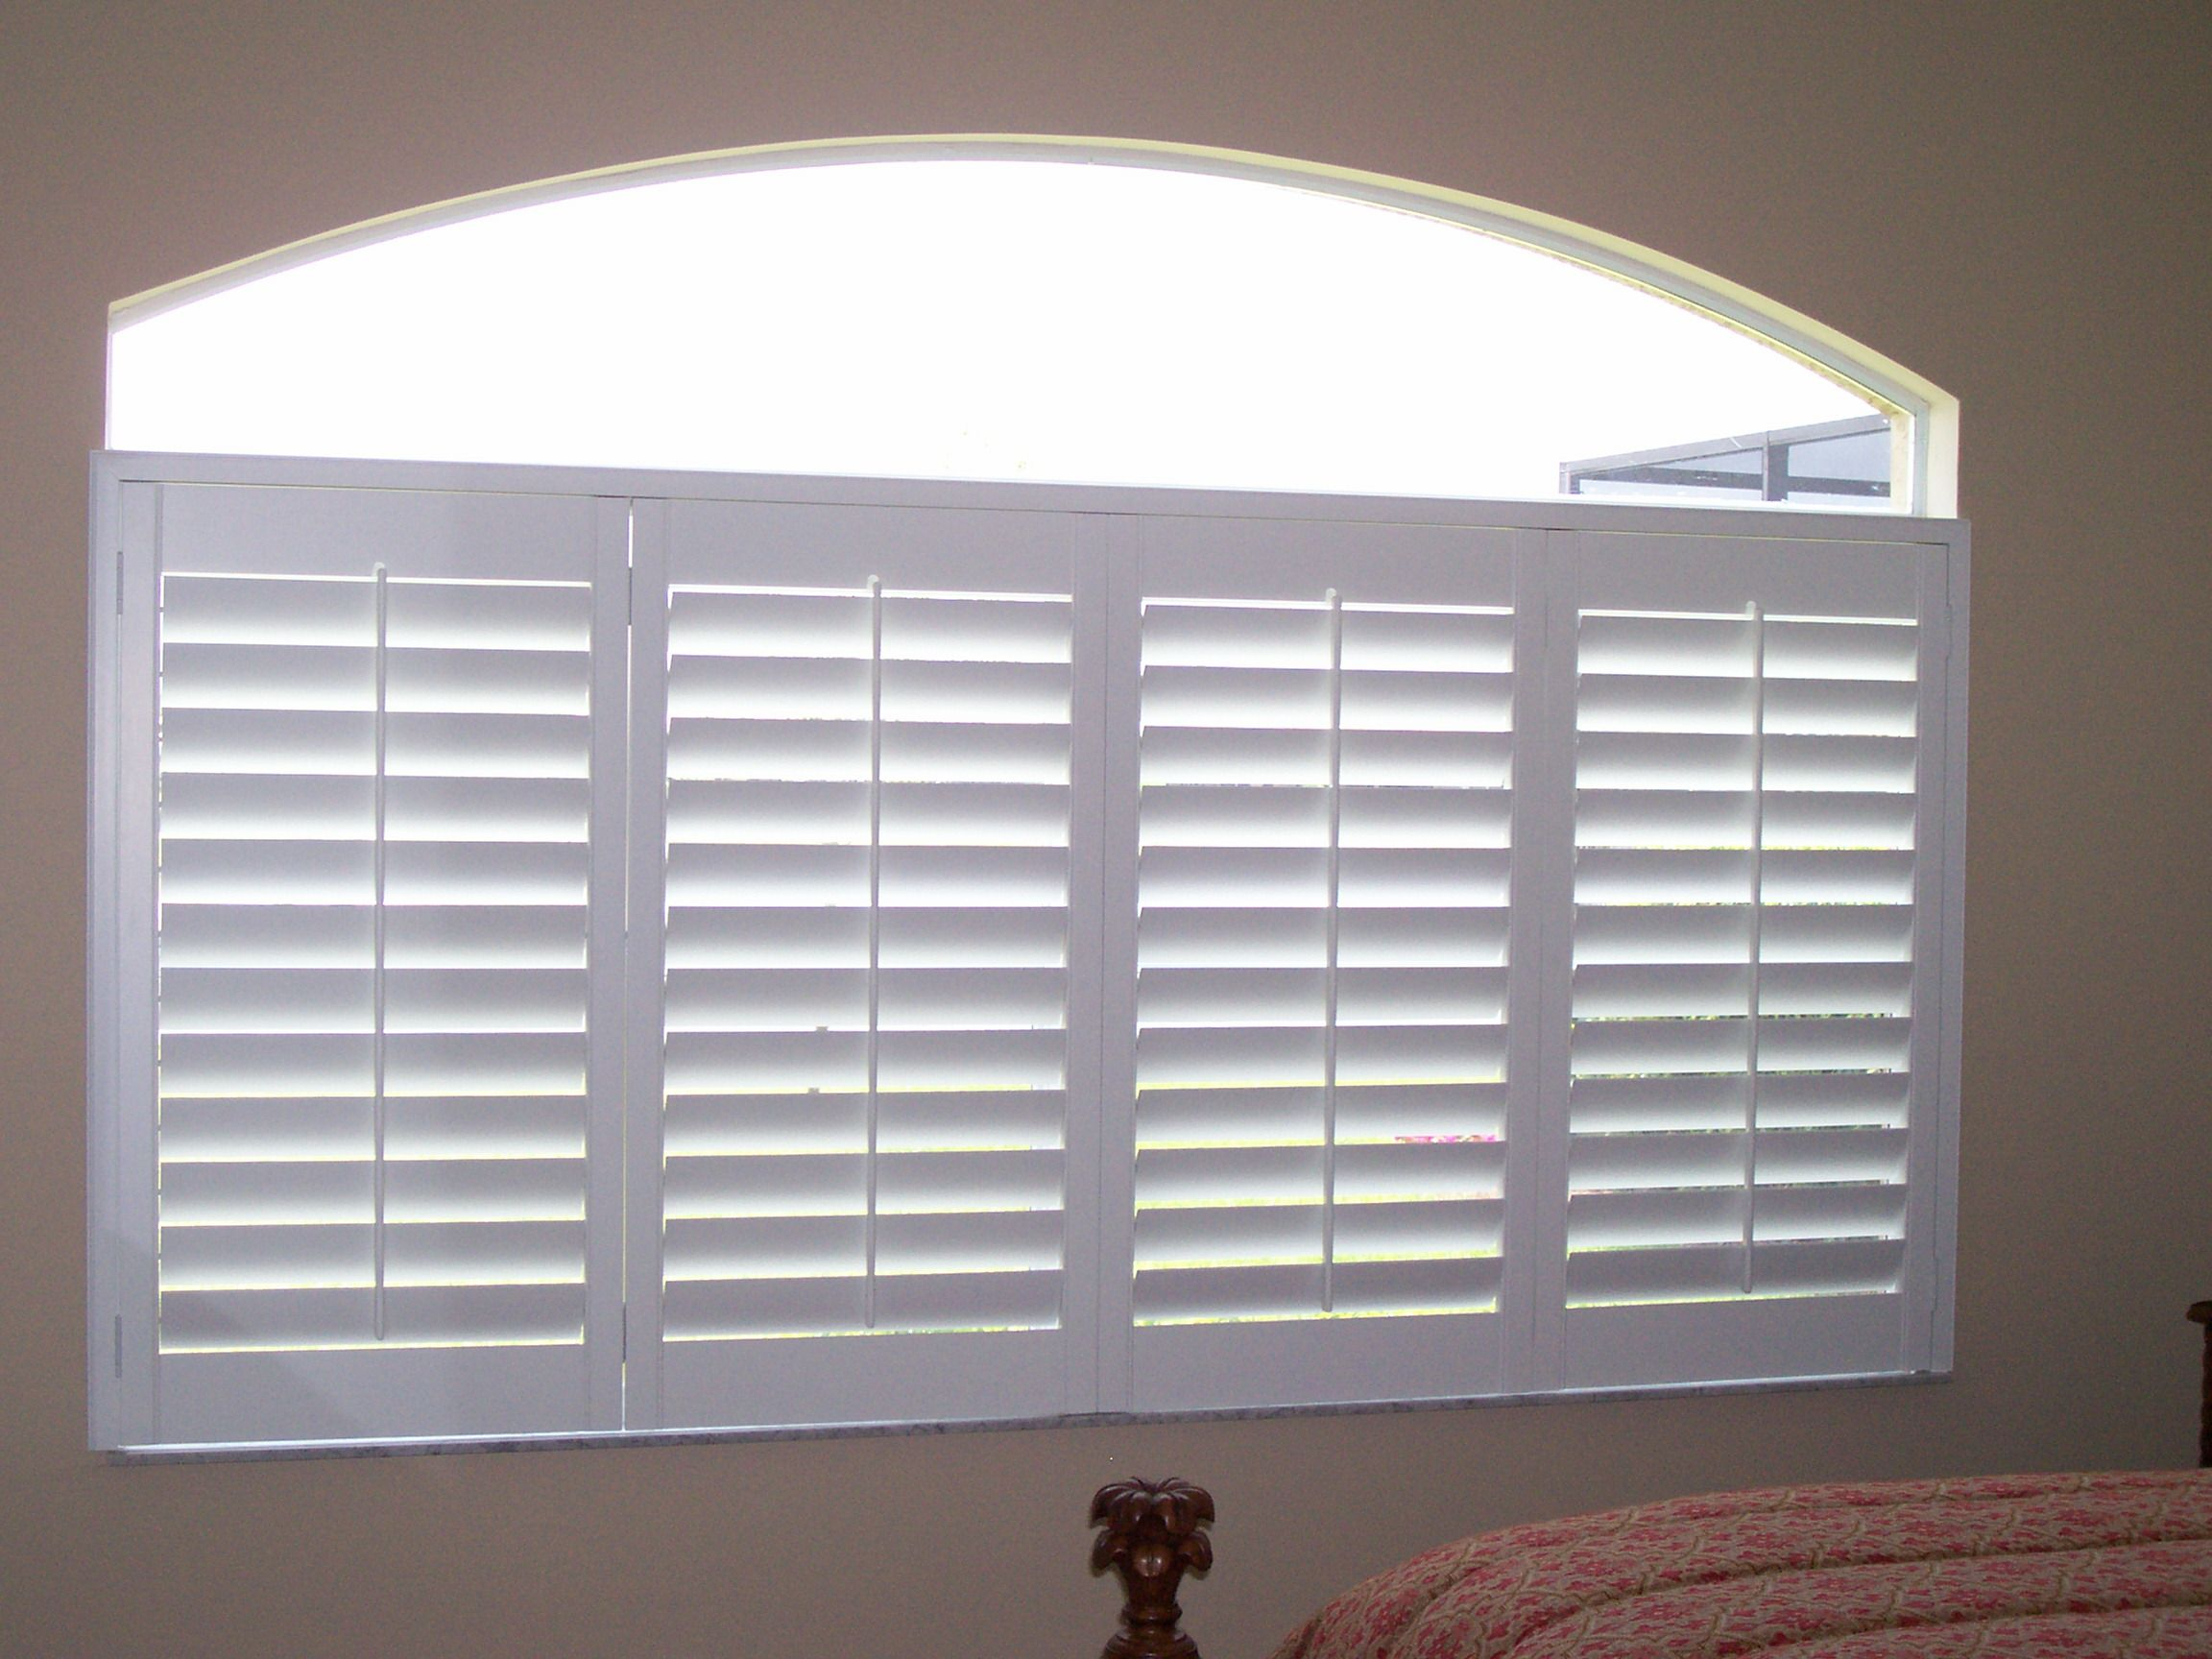 doors plantation well bi perfect budget as caseshutters com shutters tag archive matches show windows folds for interior are utah blinds